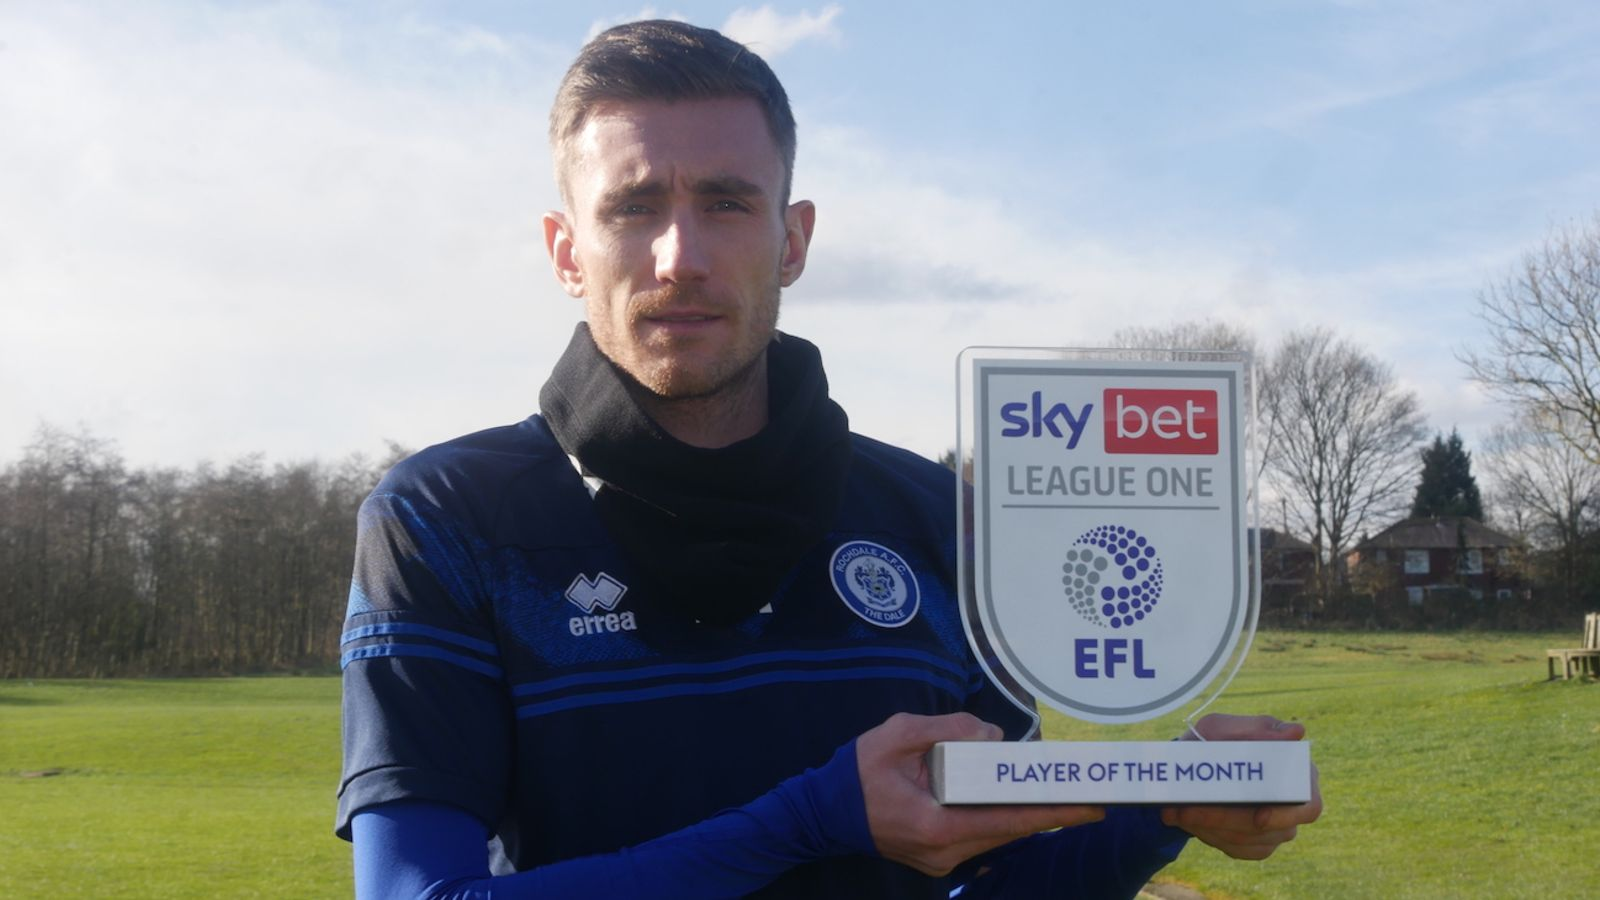 Matty Lund won the Sky Bet League One Player of the Month for January 2021.